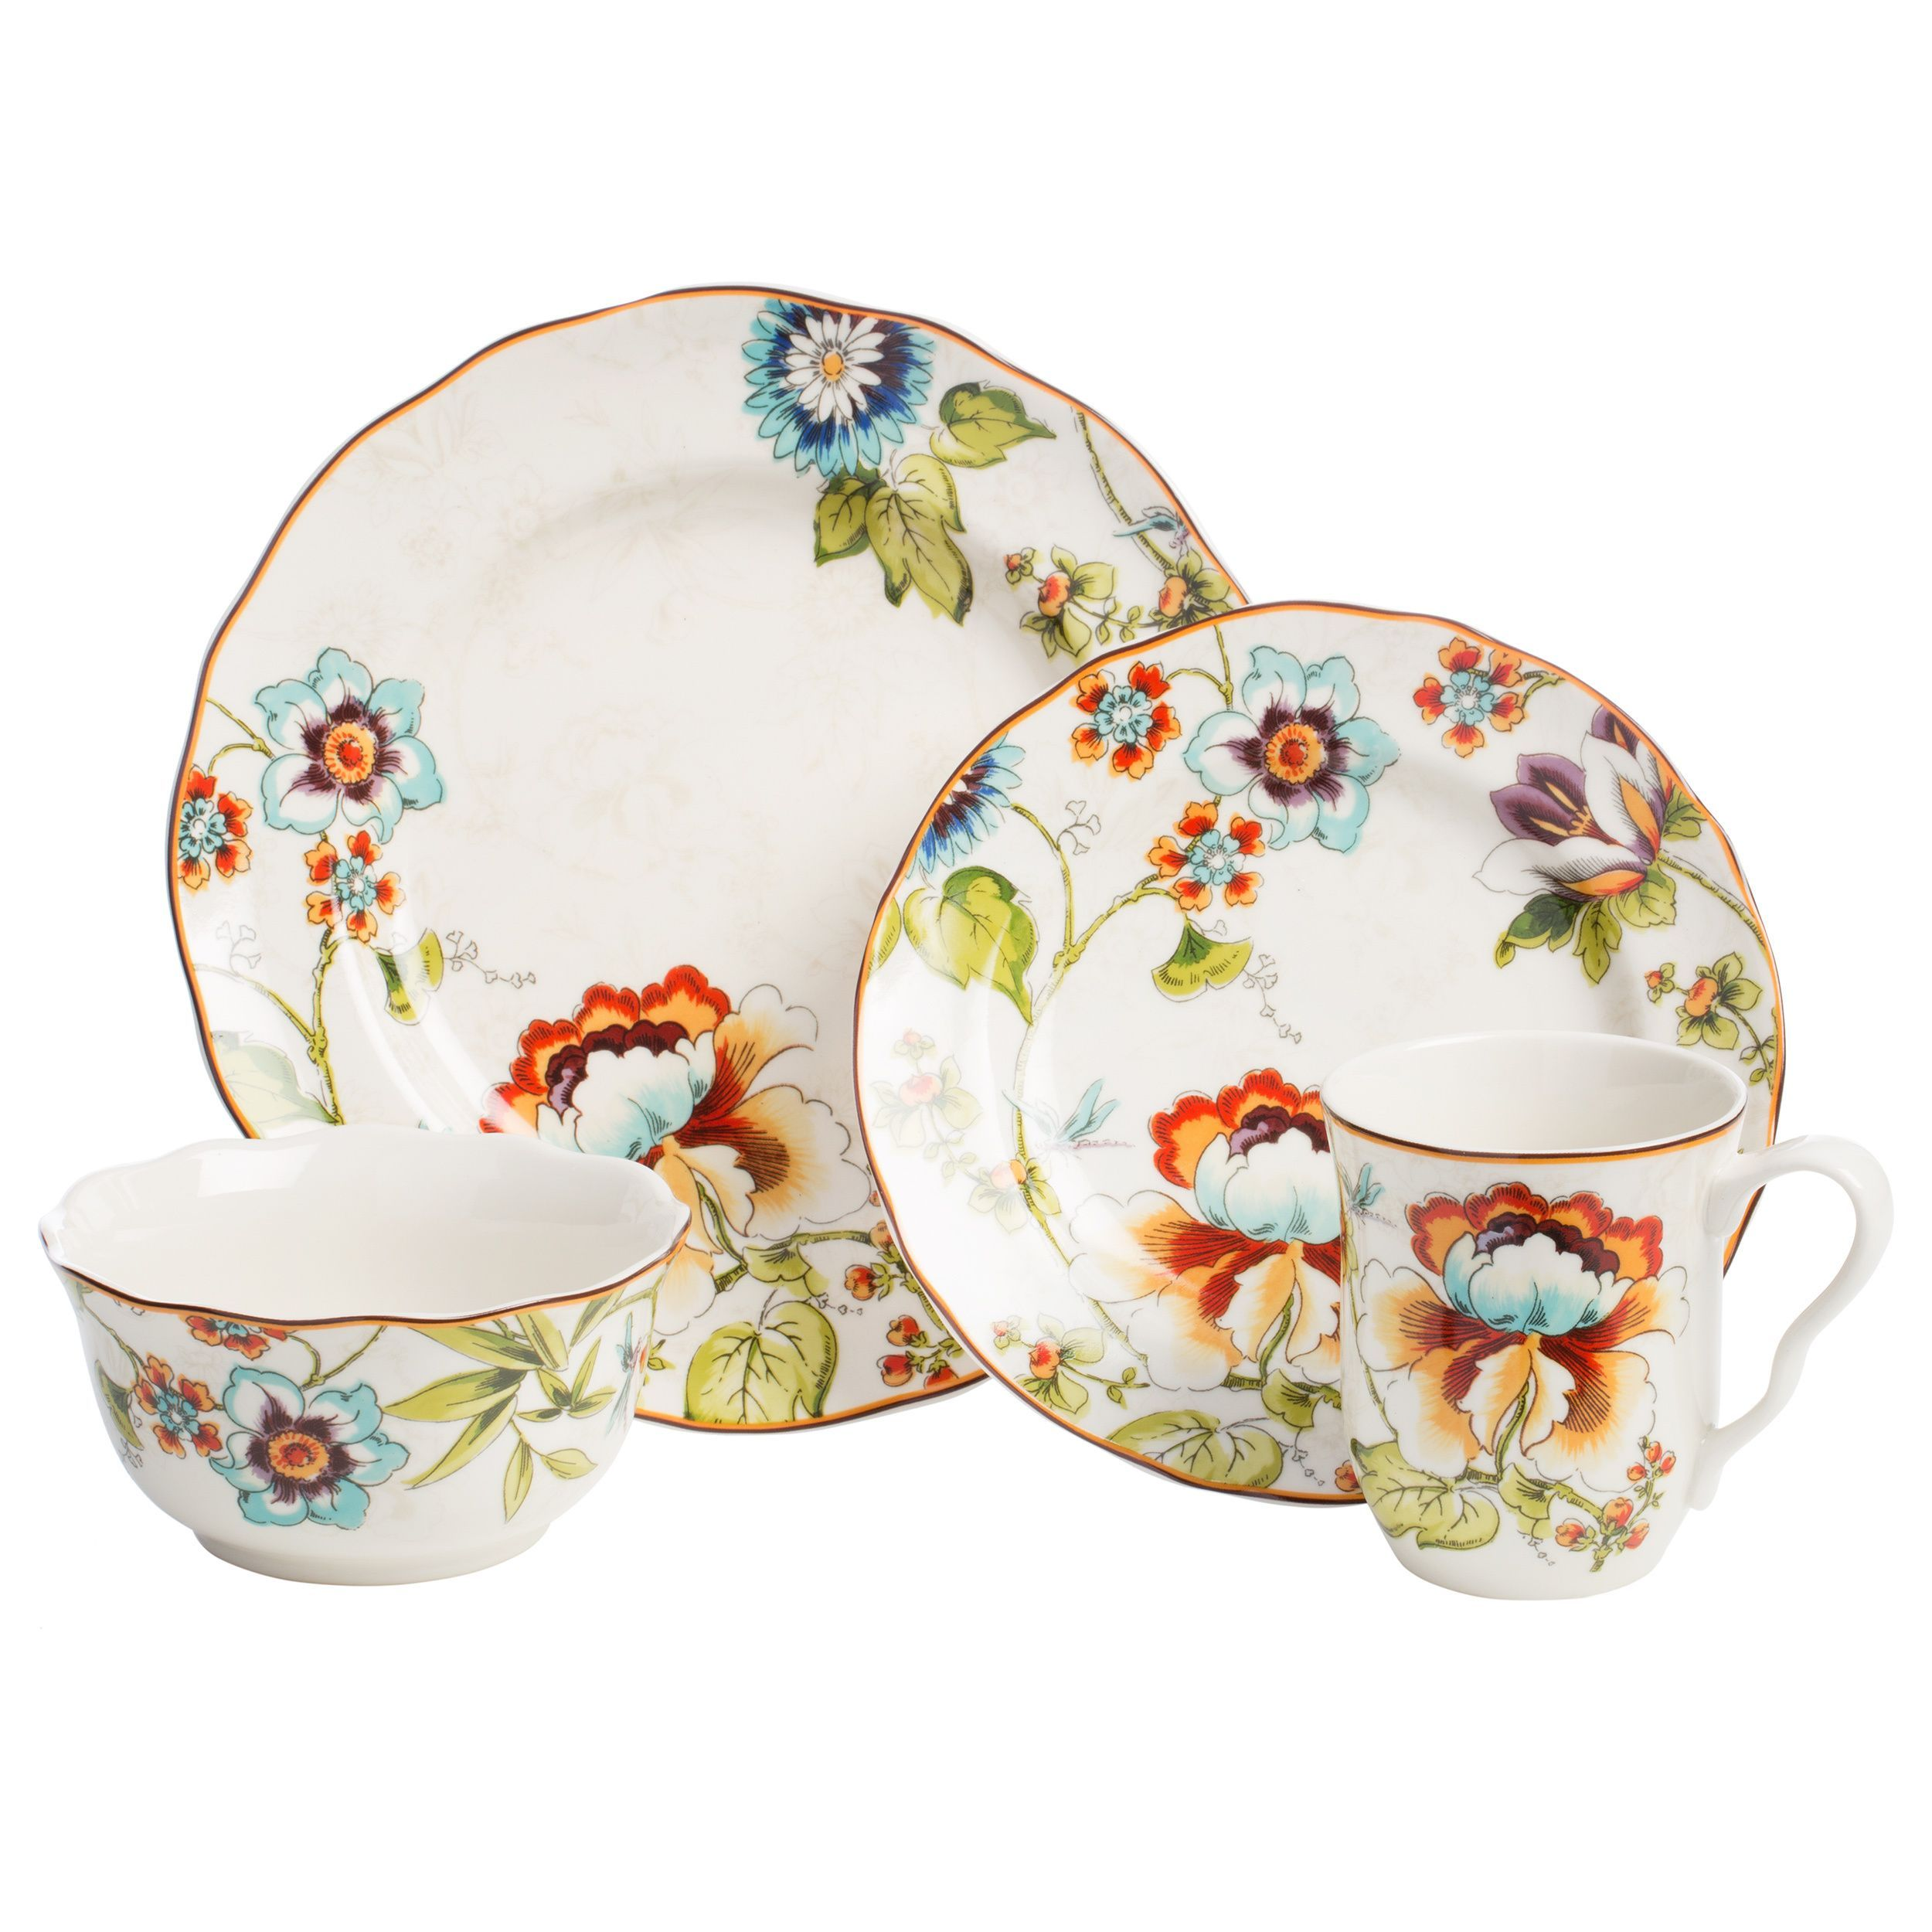 Enjoy Everyday Meals And Special Dinners On This Fl Dinnerware Set From Bella Vista Porcelain Is Safe For The Dishwasher